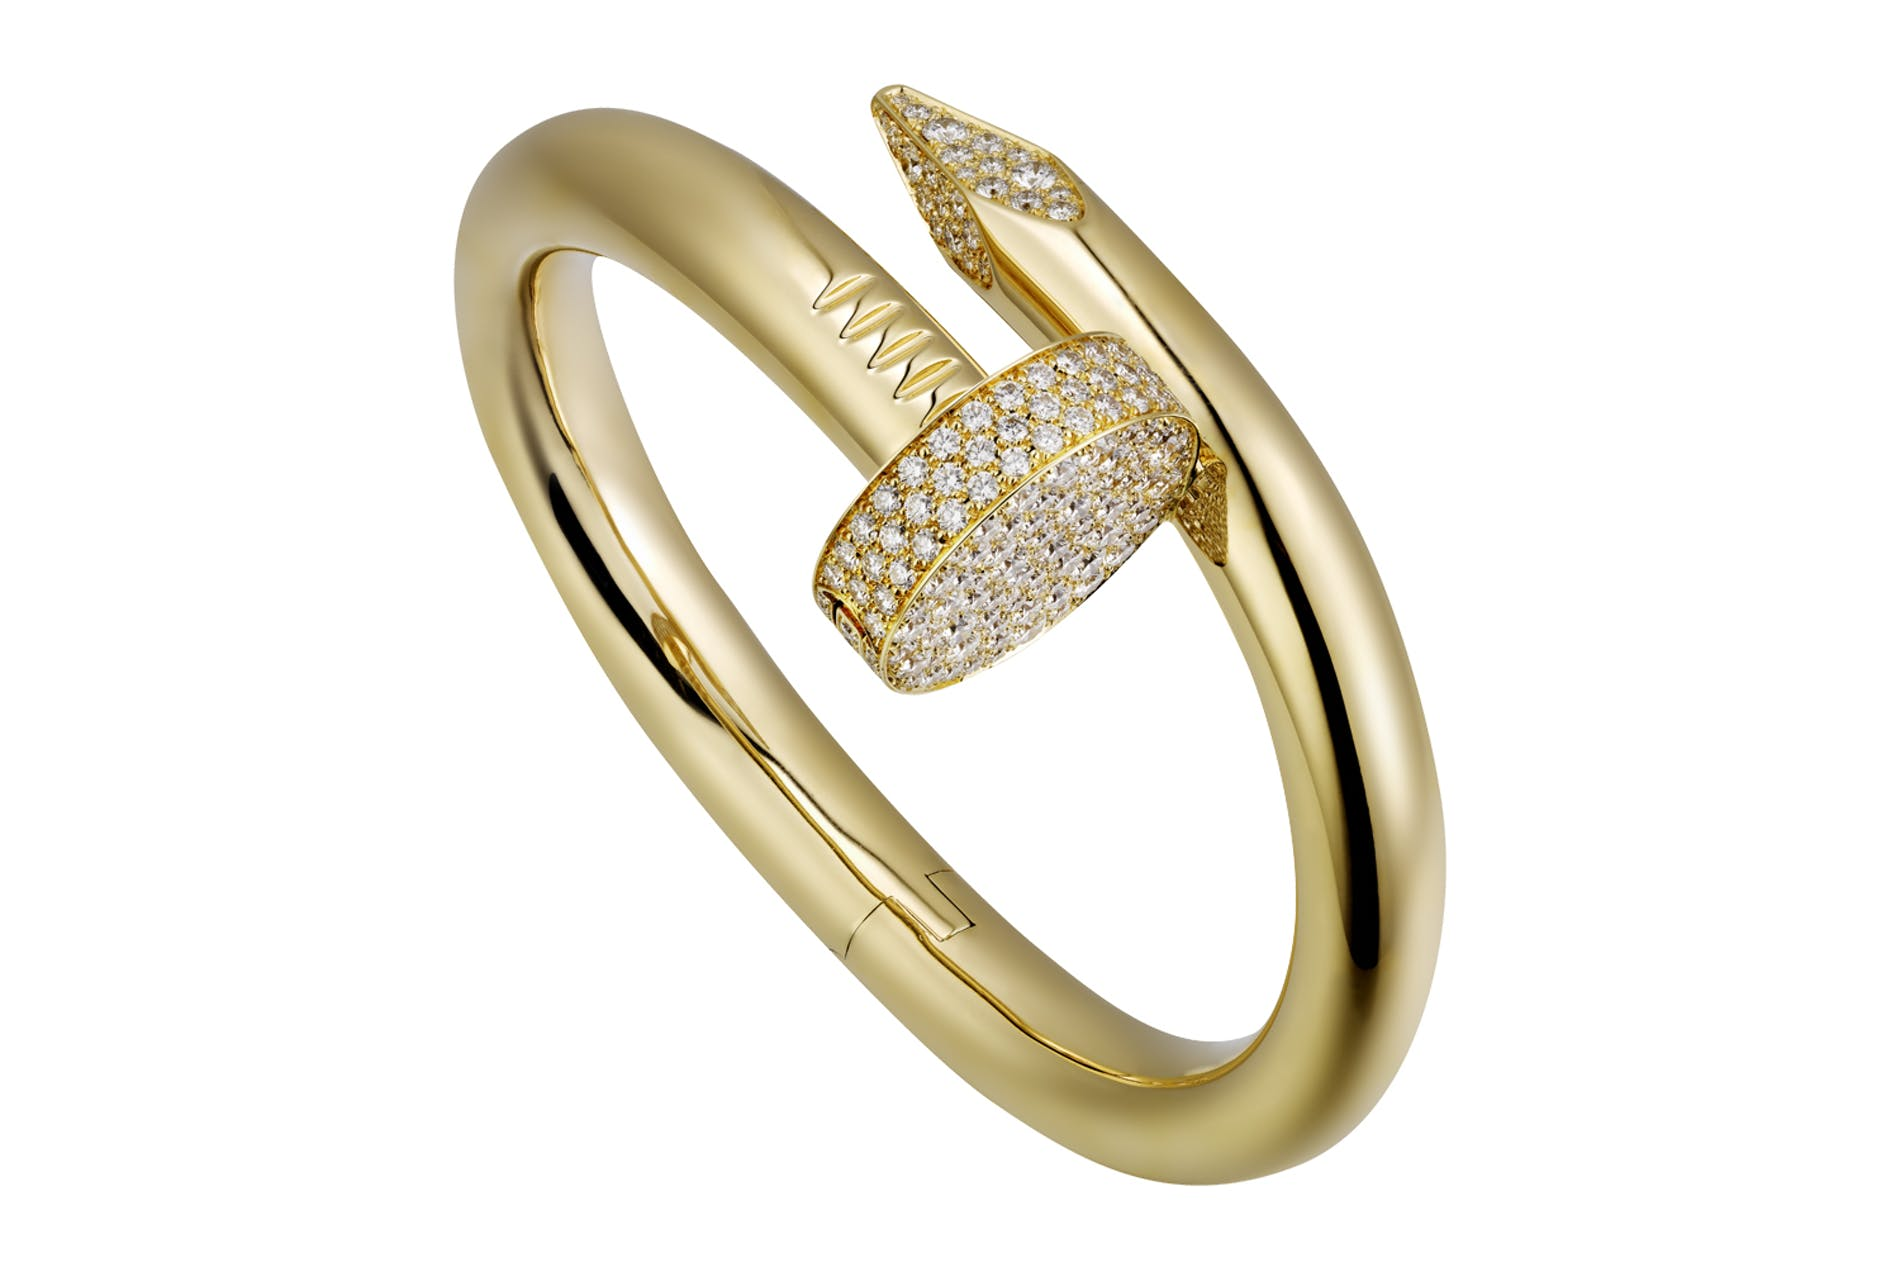 Cartier Juste un Clou bracelet, large model in yellow gold, head and point paved with diamonds